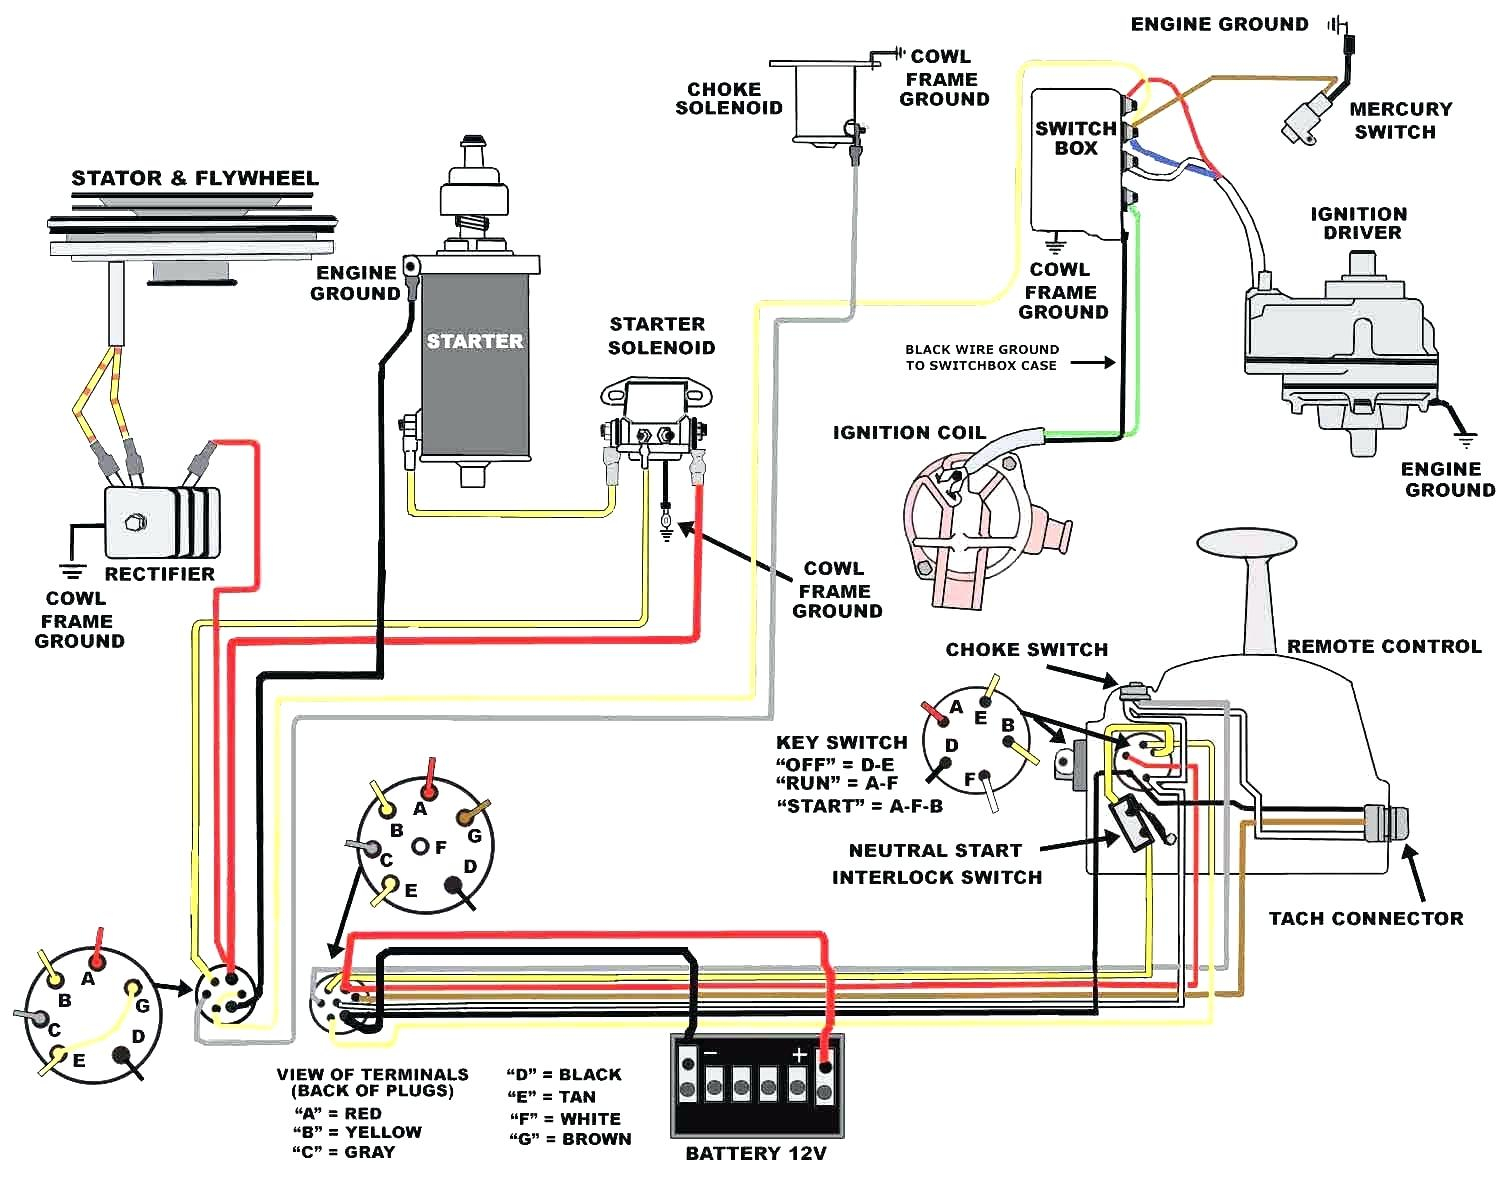 Johnson Ignition Switch Wiring Diagram Great Boat Outboard Endearing - Johnson Ignition Switch Wiring Diagram